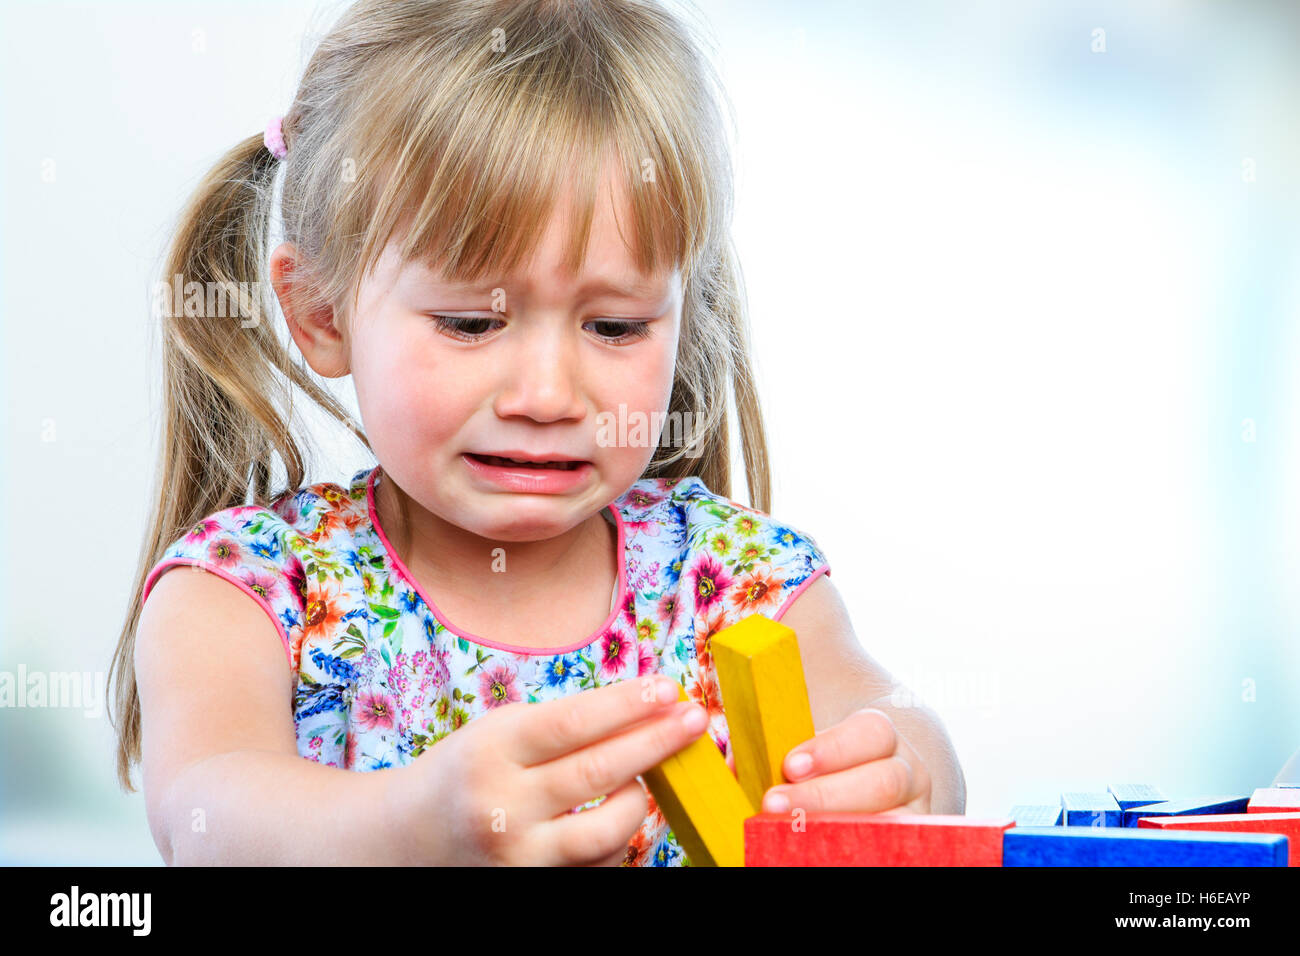 Close up portrait of crying little girl playing with wooden blocks at table.Frustrated girl showing moody behavior - Stock Image